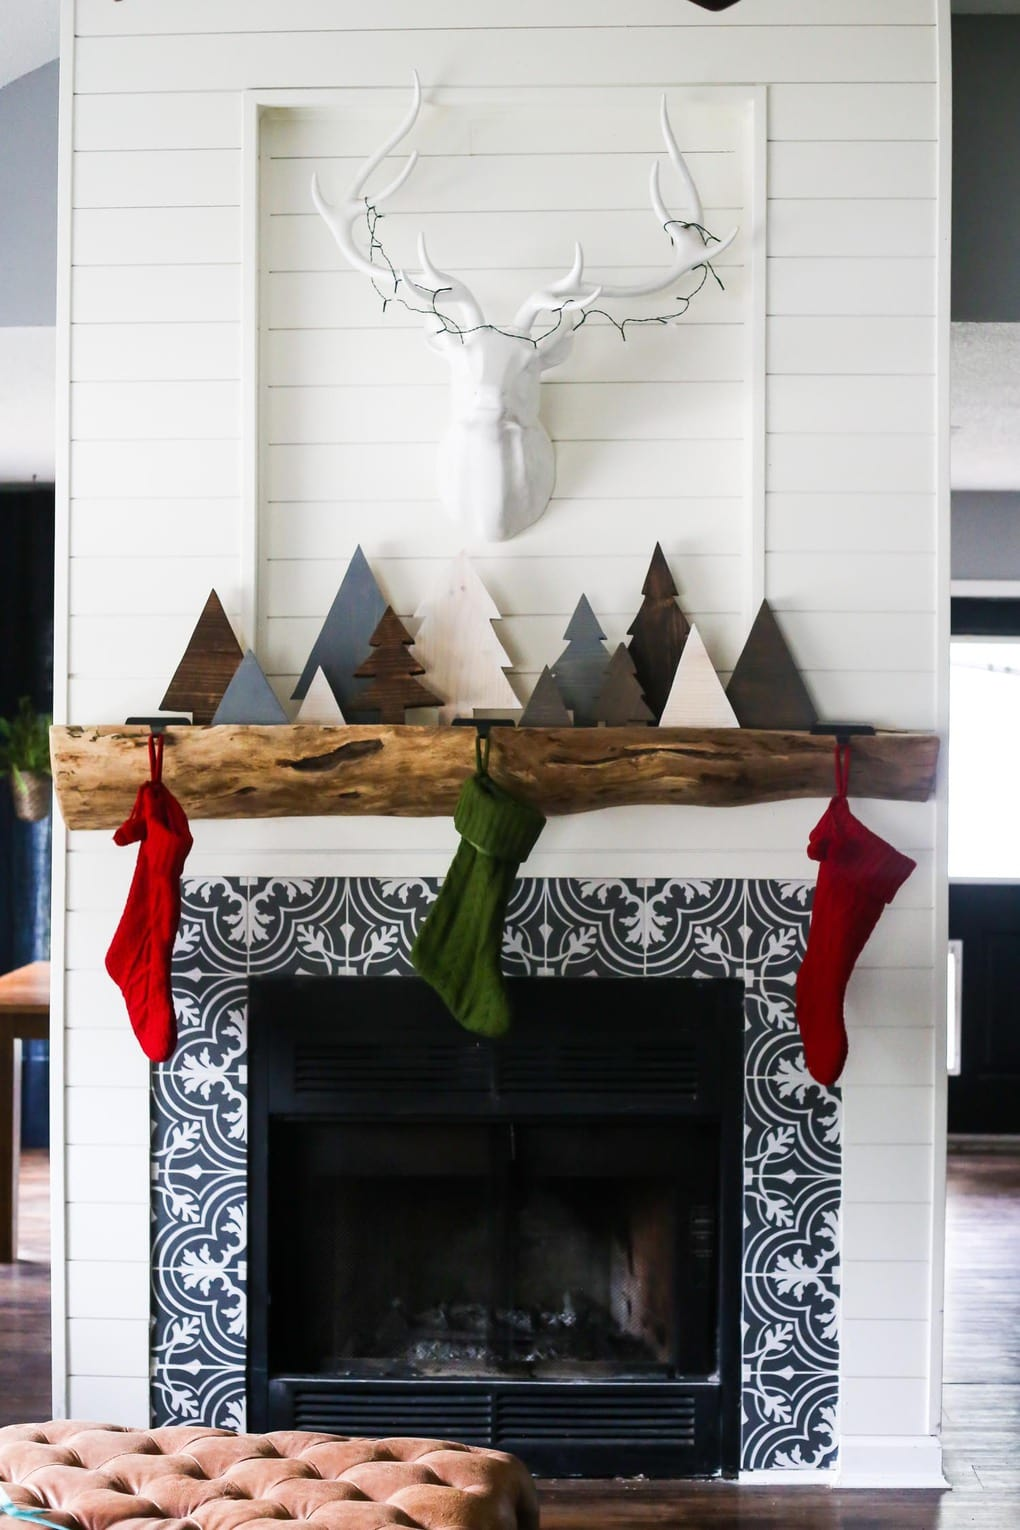 How to make adorable DIY scrap wood Christmas trees for your mantel this holiday season